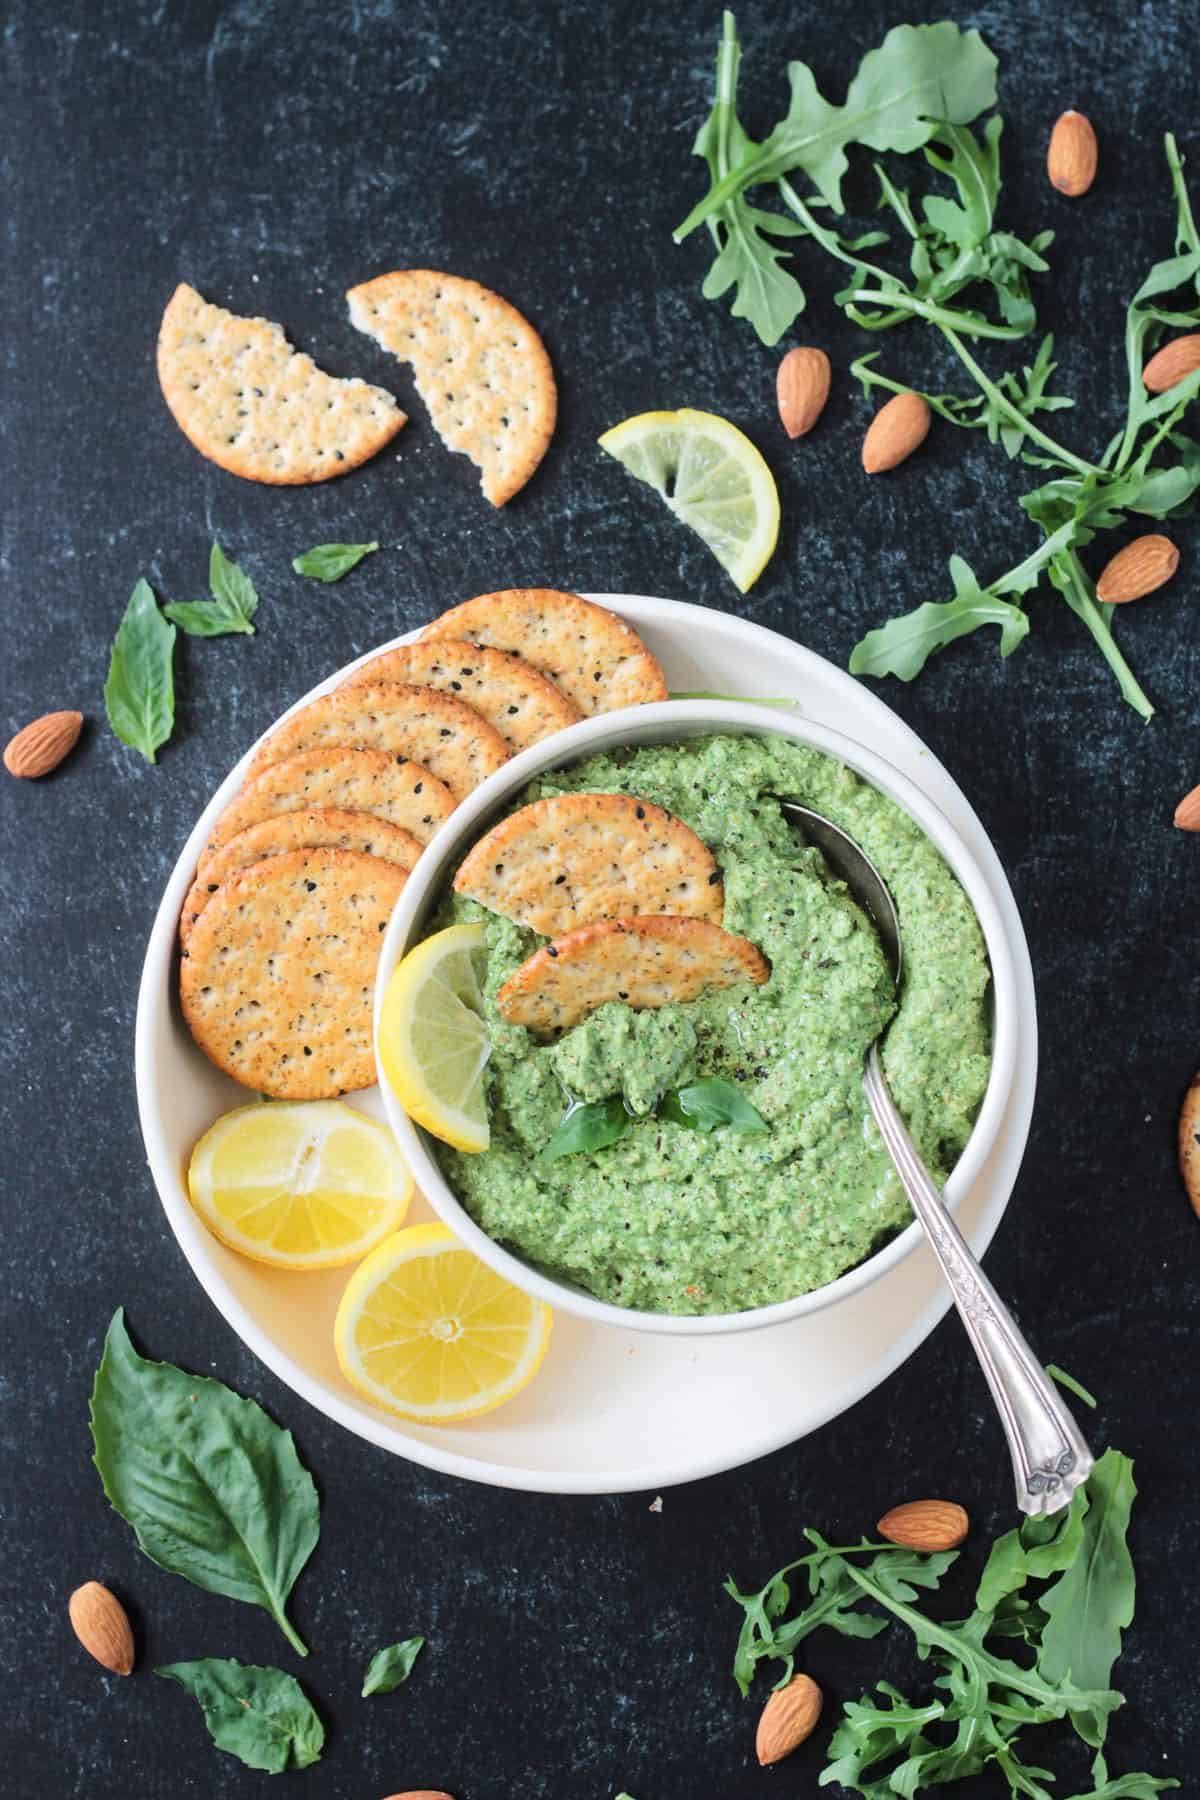 Pumpkin seed pesto in a bowl on a plate with crackers and two lemon halves.